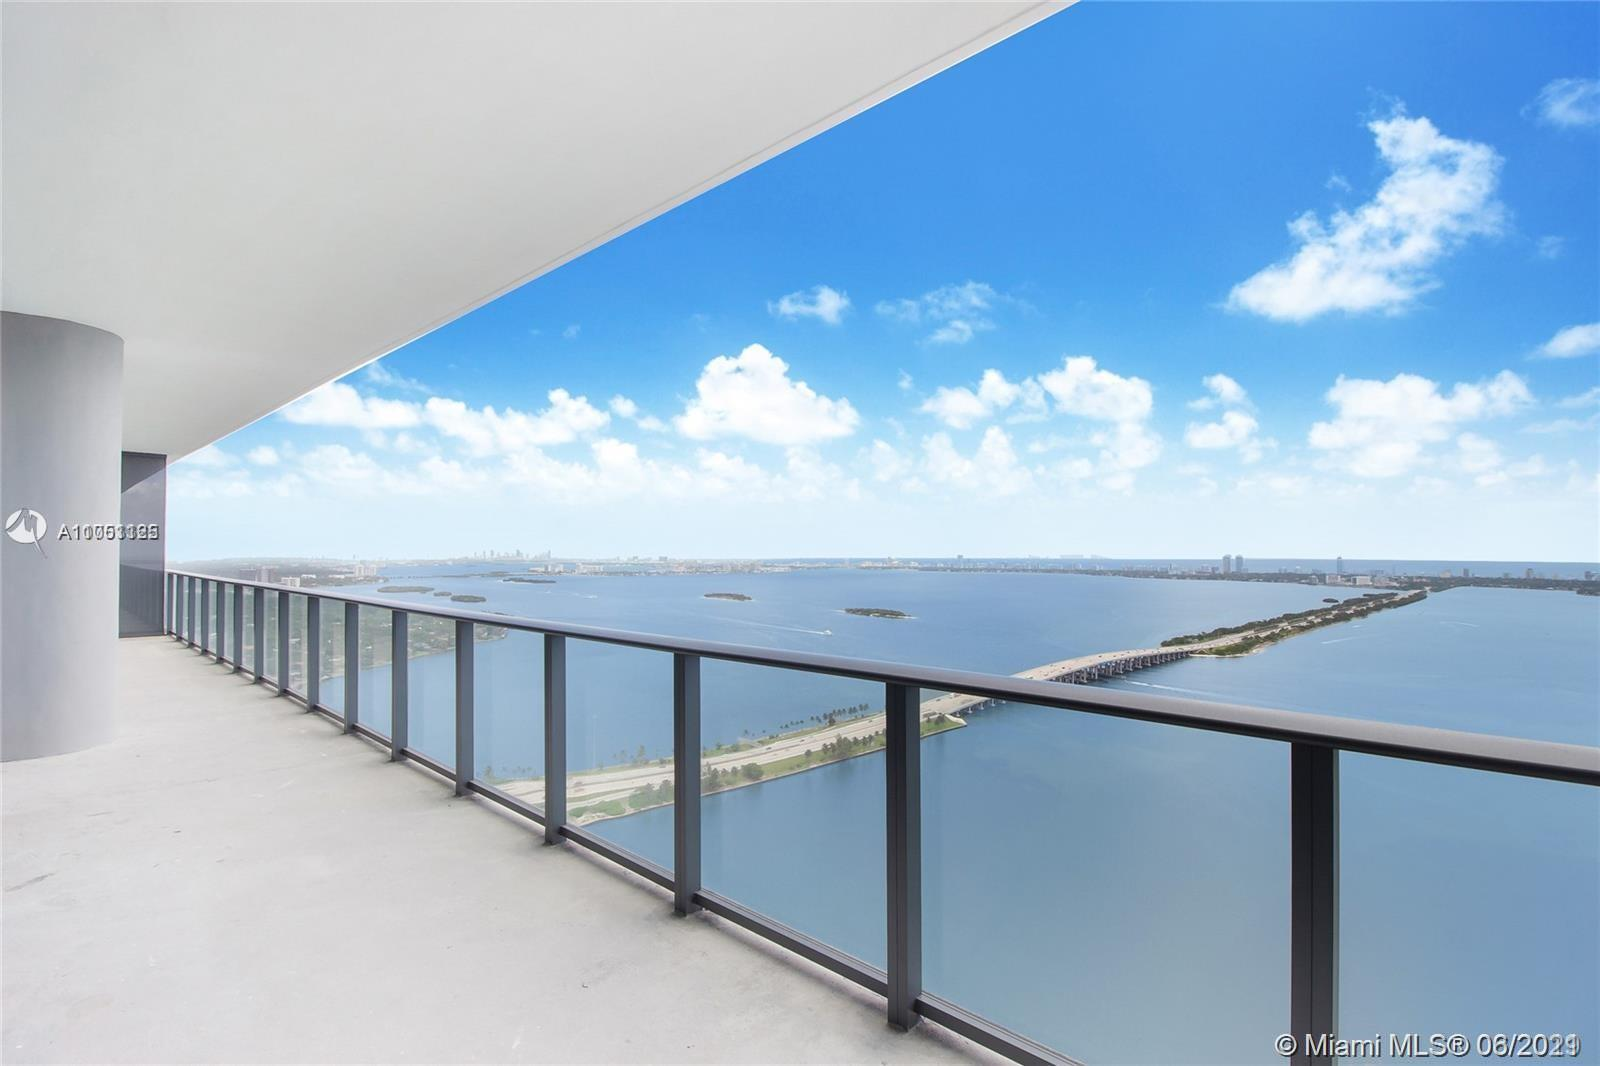 Stunning PH with unobstructed views of the bay, Miami Beach and downtown Miami from this 4 bedroom,